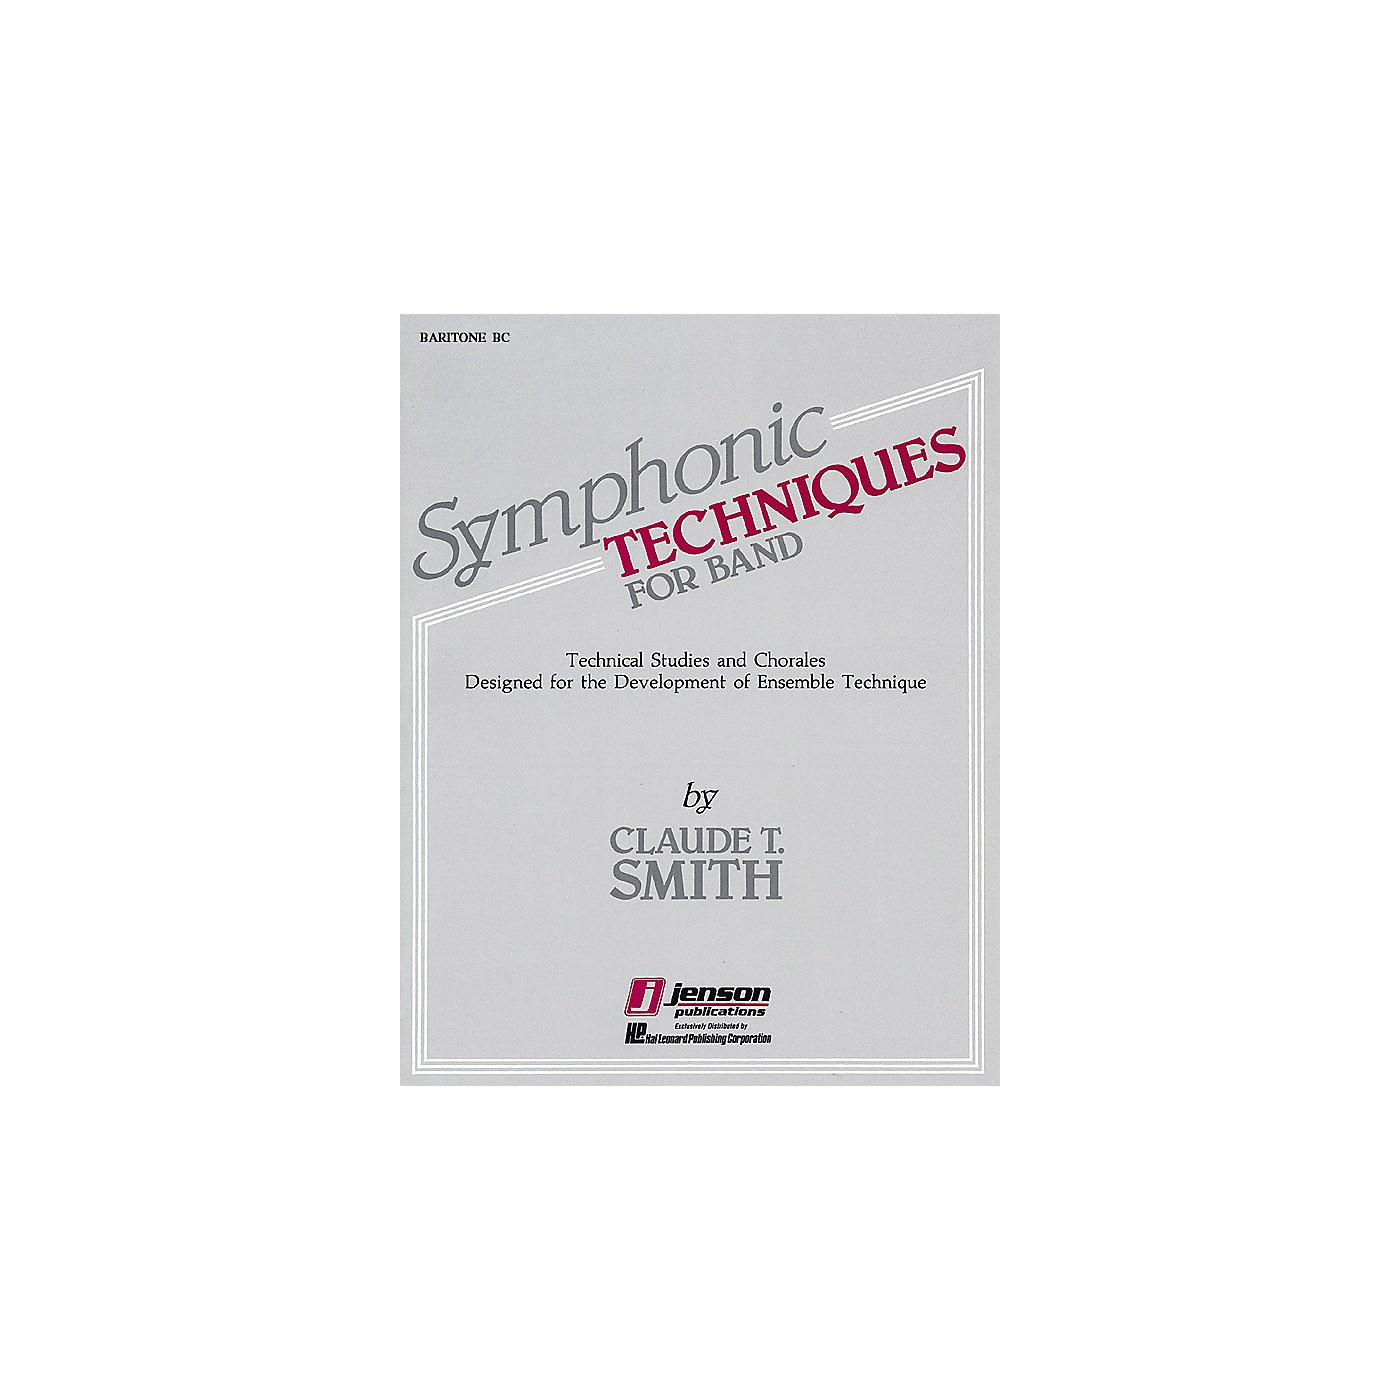 Hal Leonard Symphonic Techniques for Band (Baritone BC) Concert Band Level 2-3 Composed by Claude T. Smith thumbnail